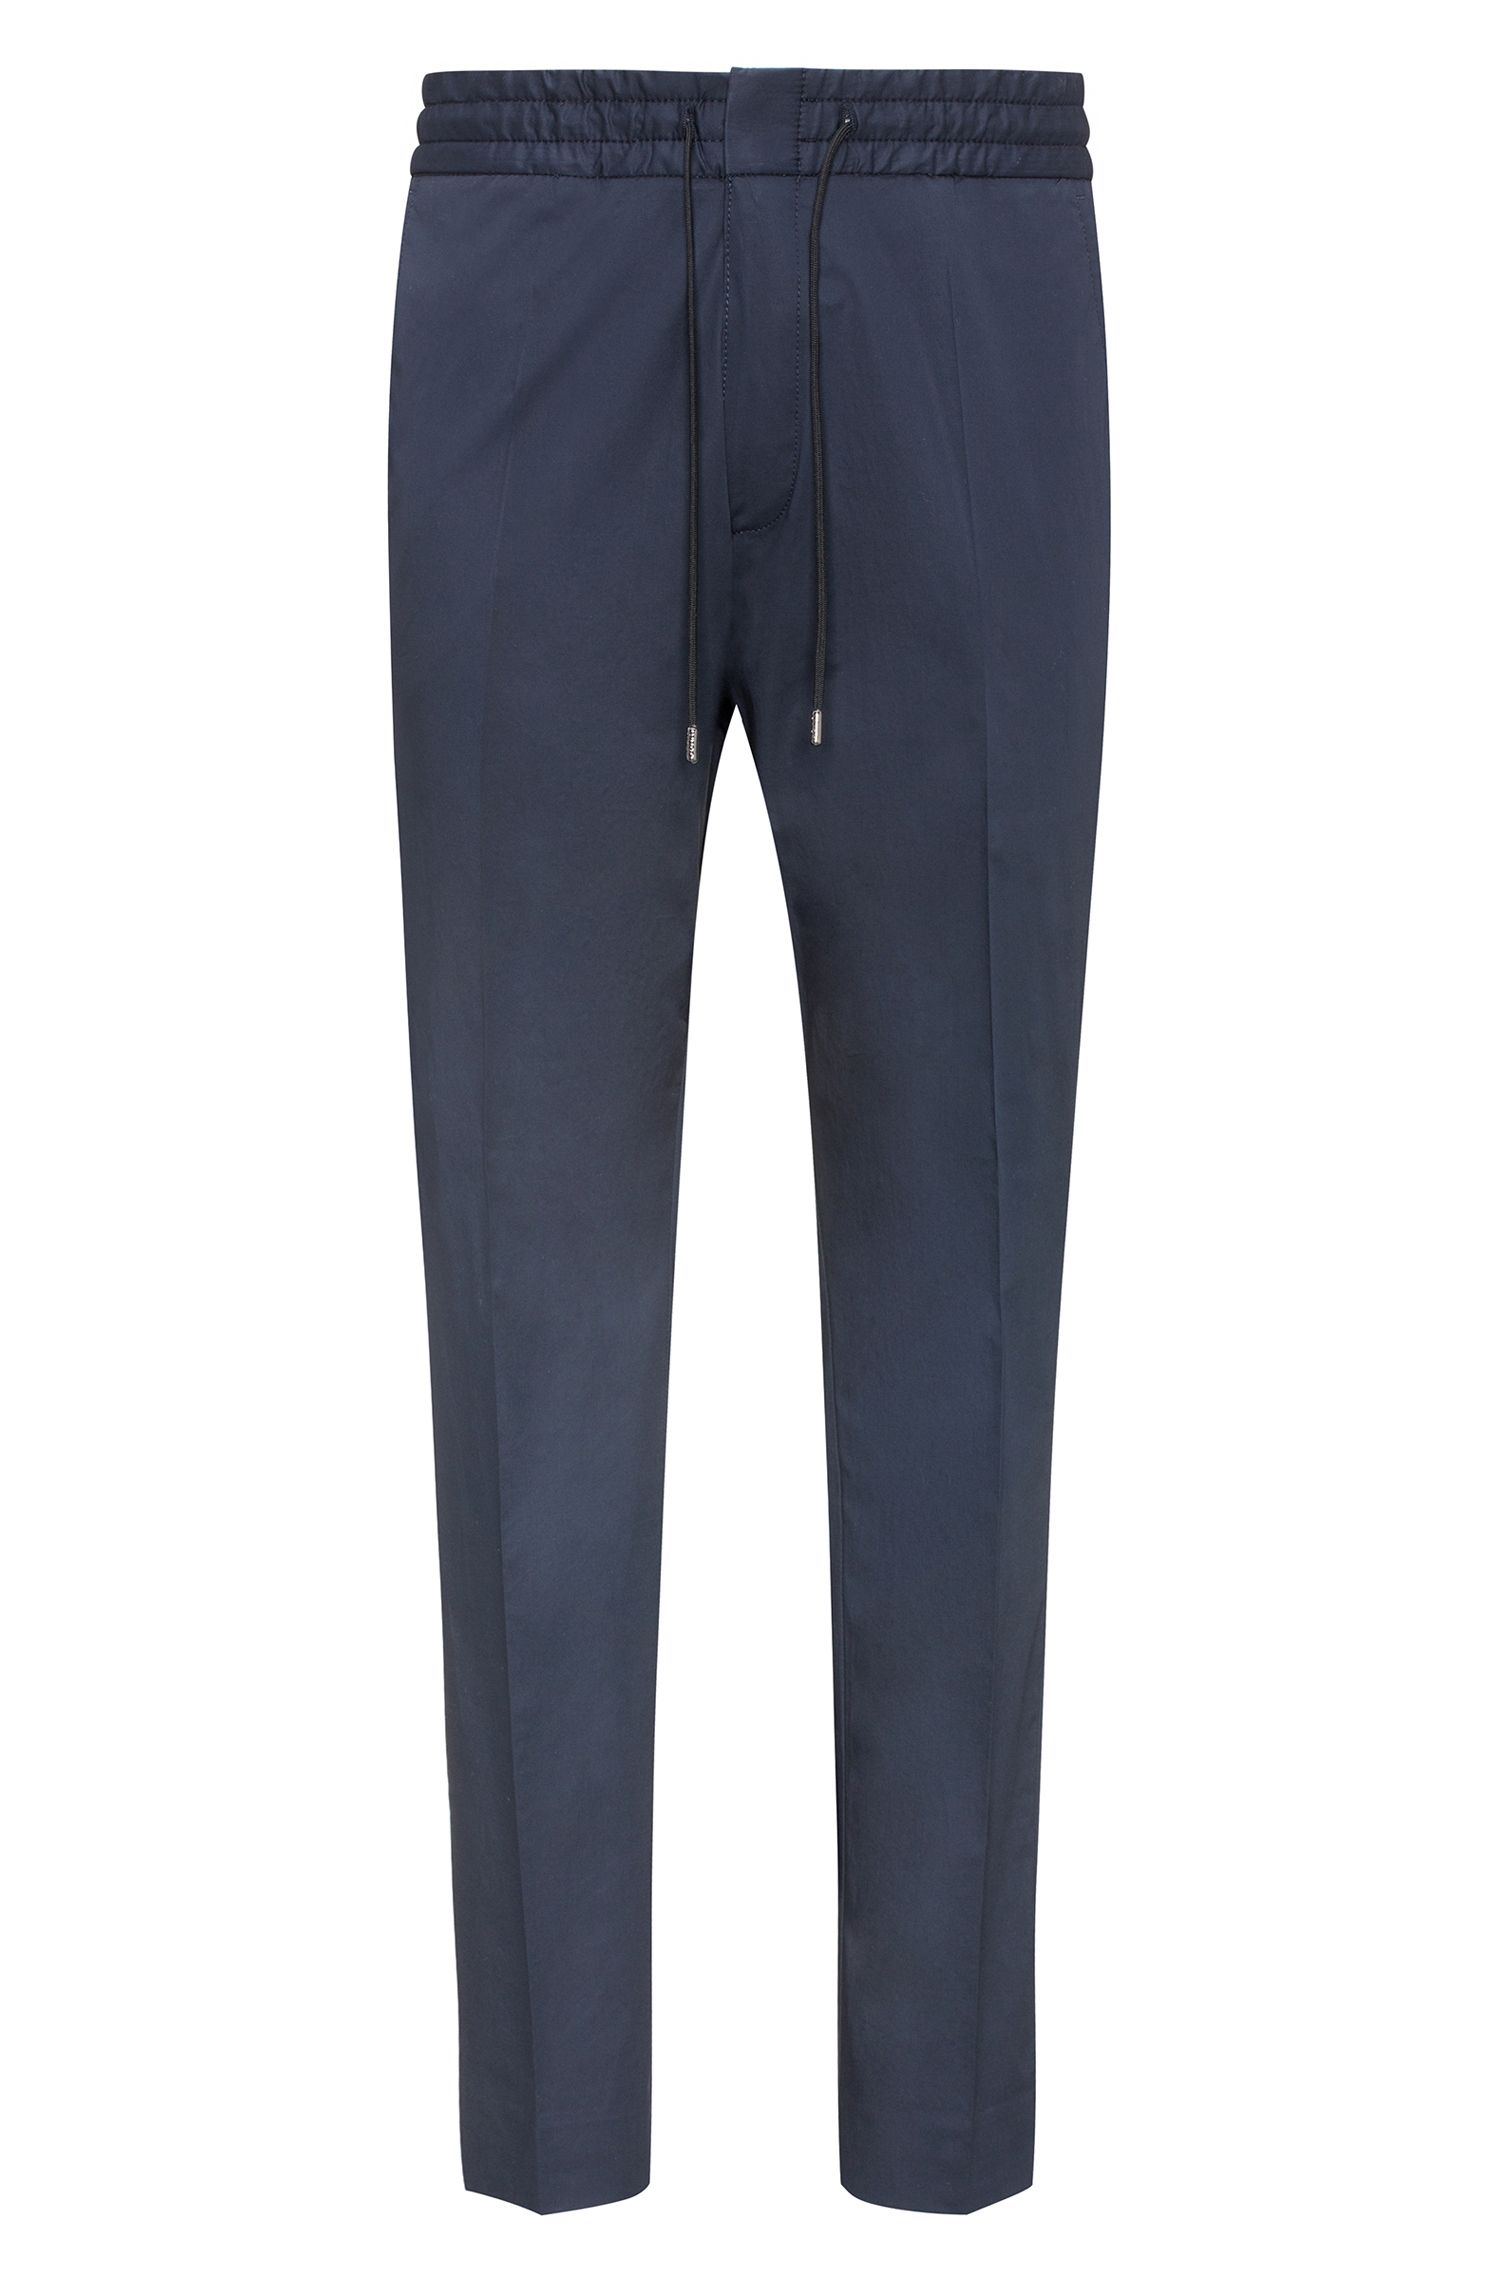 Stretch Cotton Pant, Tapered Fit | Himesh, Dark Blue